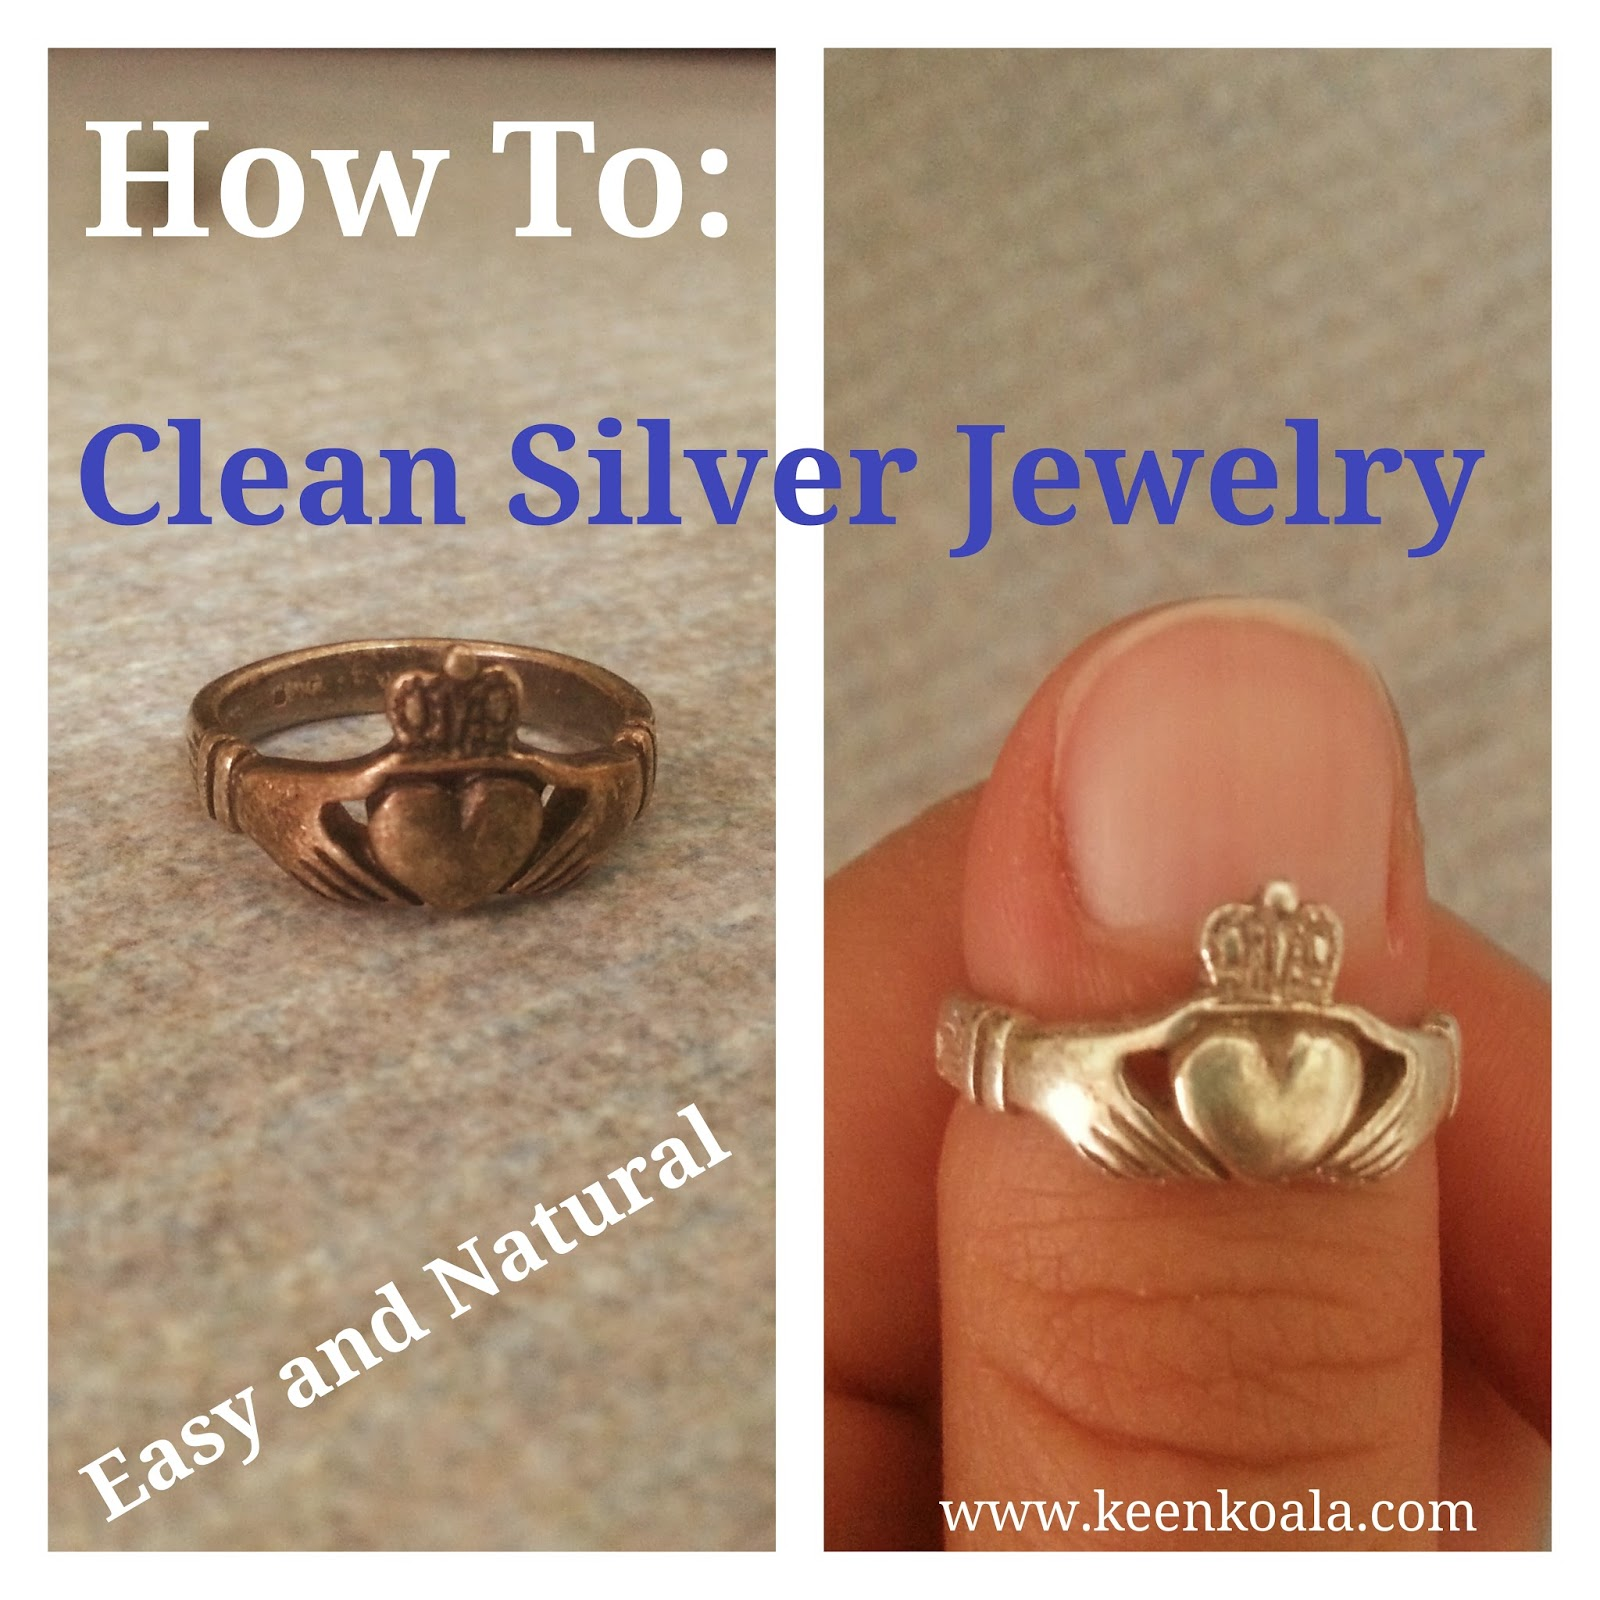 Keen koala how to clean silver jewelry easily and naturally for How to clean jewelry with baking soda